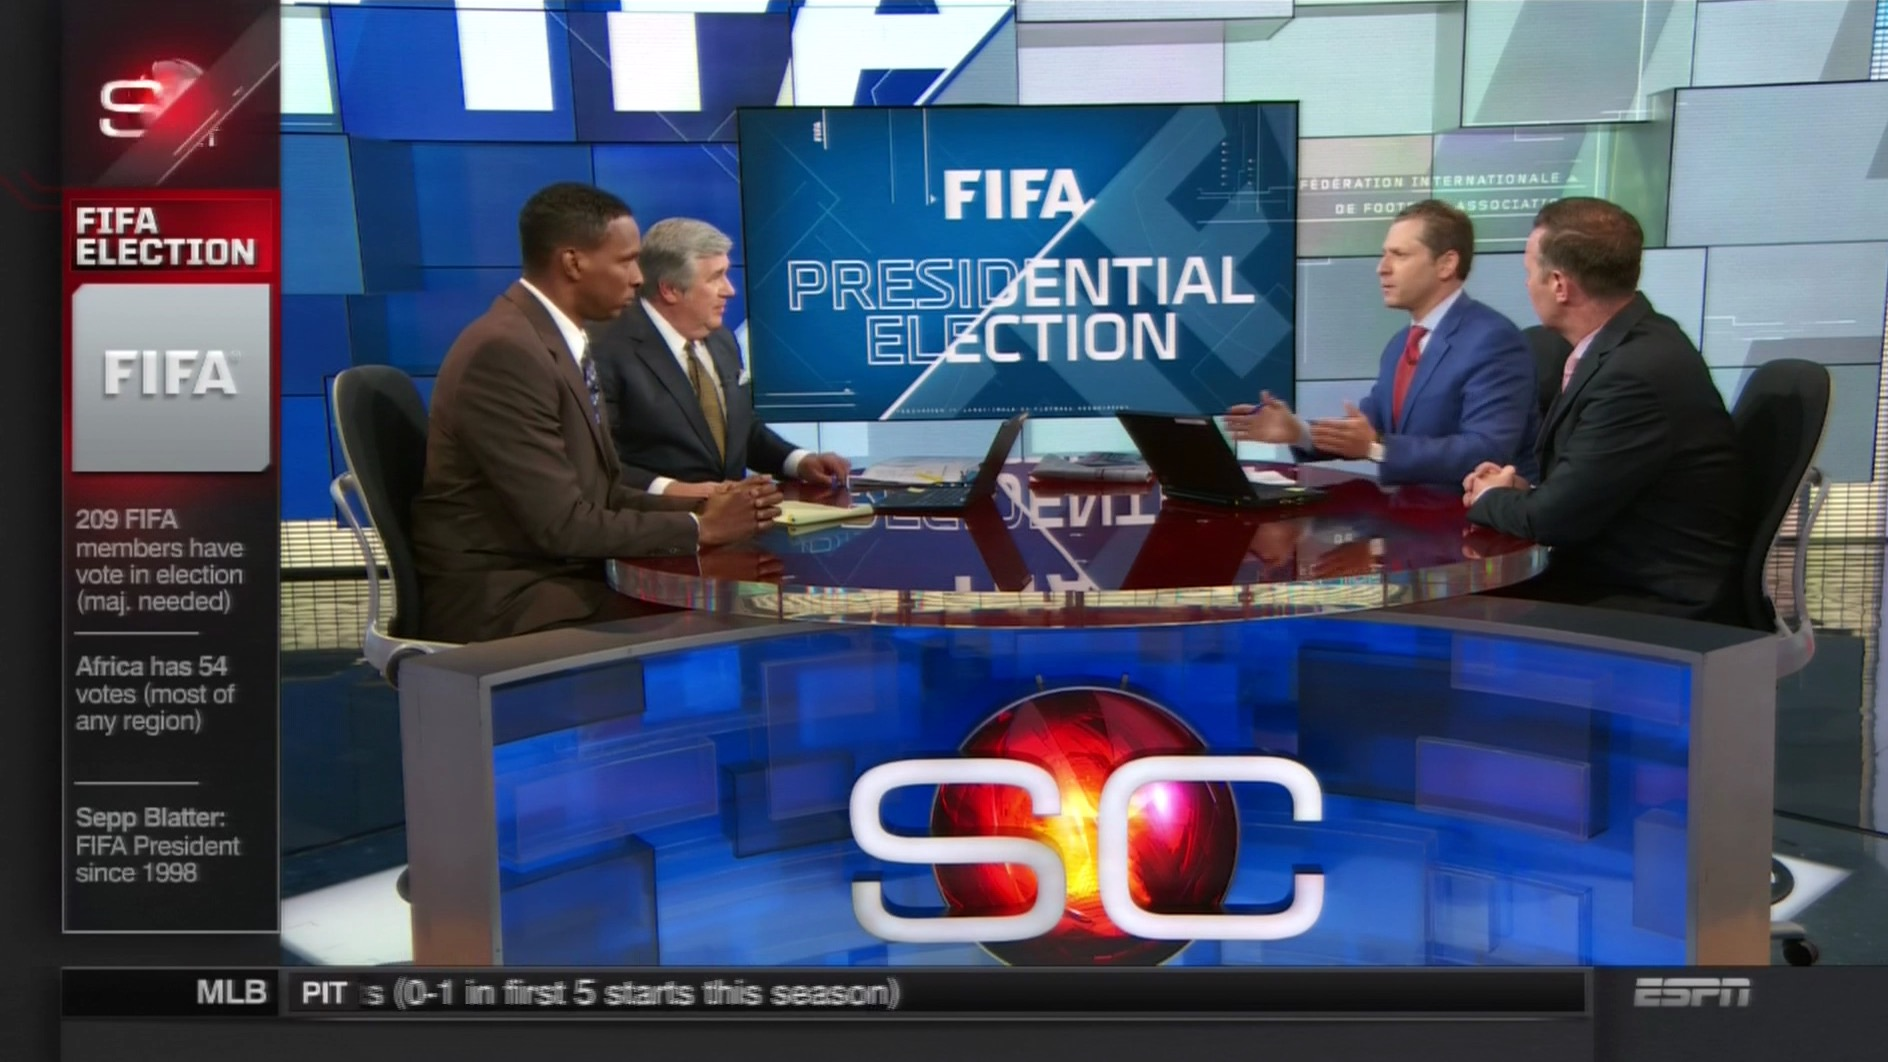 Espn Miles Ahead Of Competition In Fifa Election Coverage